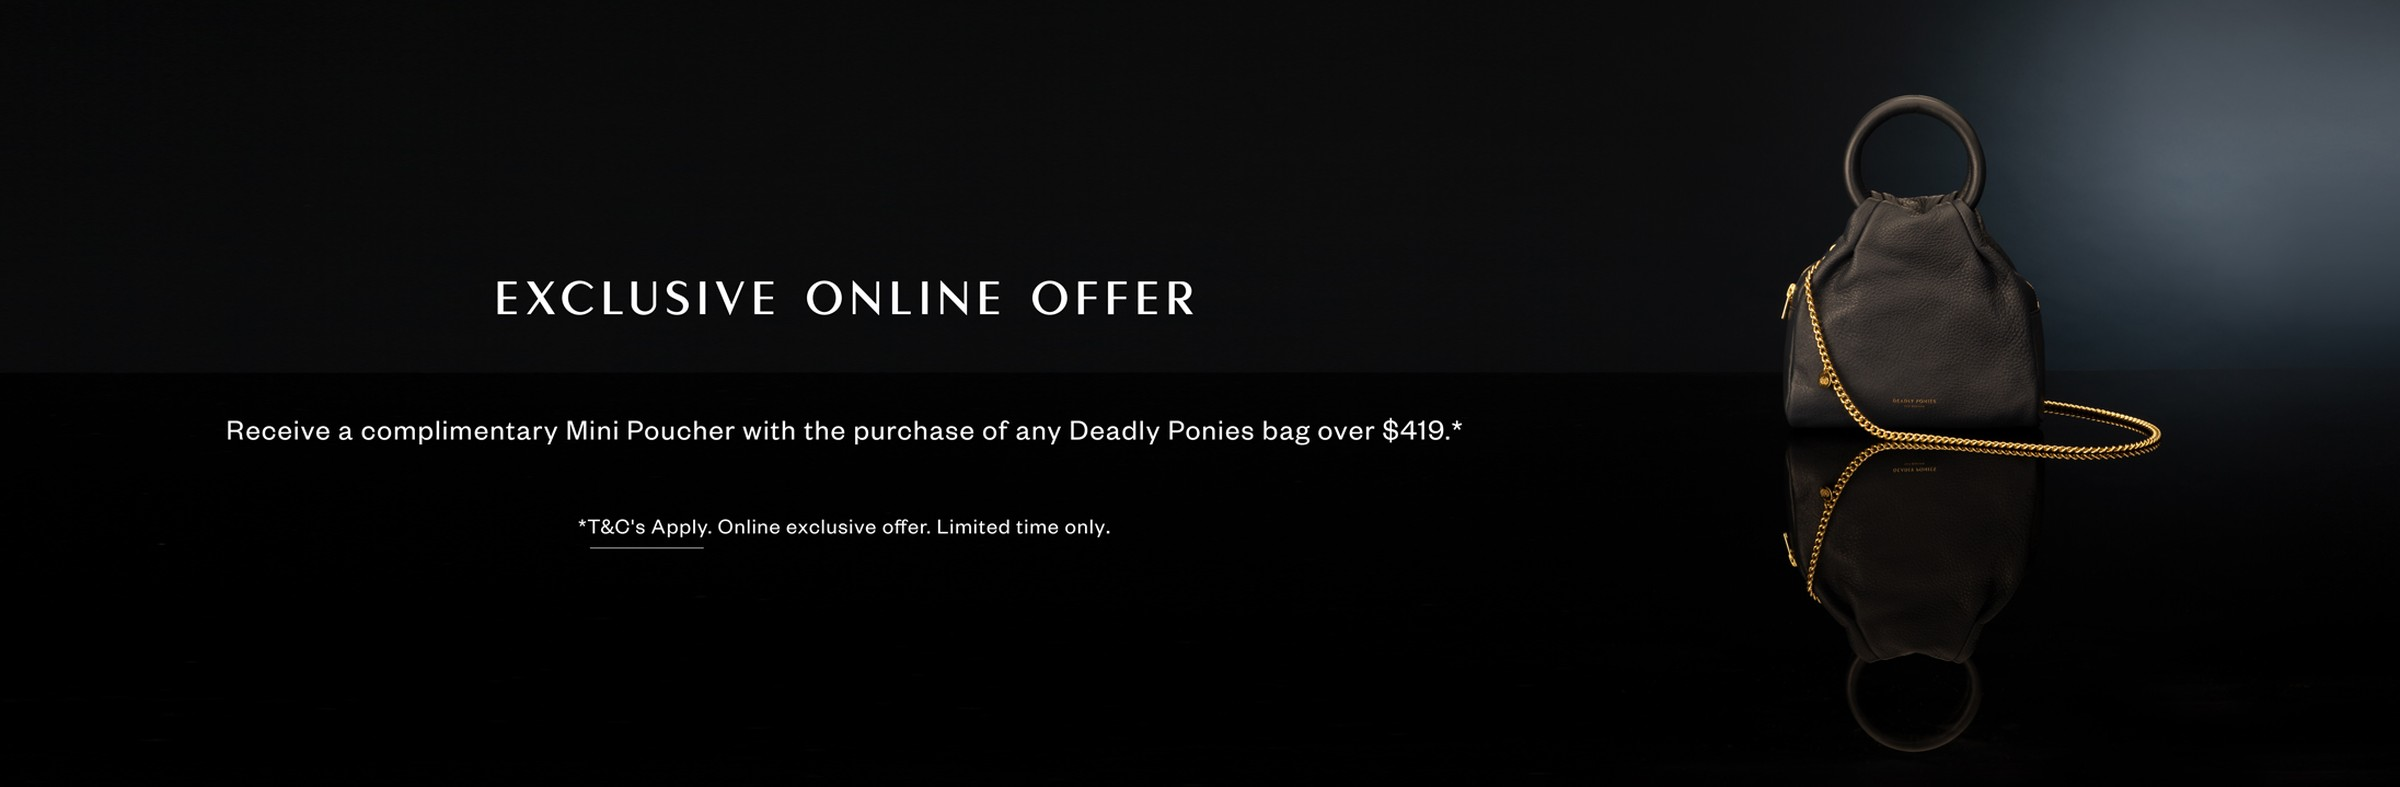 https://deadlyponies.com/nz/terms-conditions/#online-exclusive-gift-with-purchase